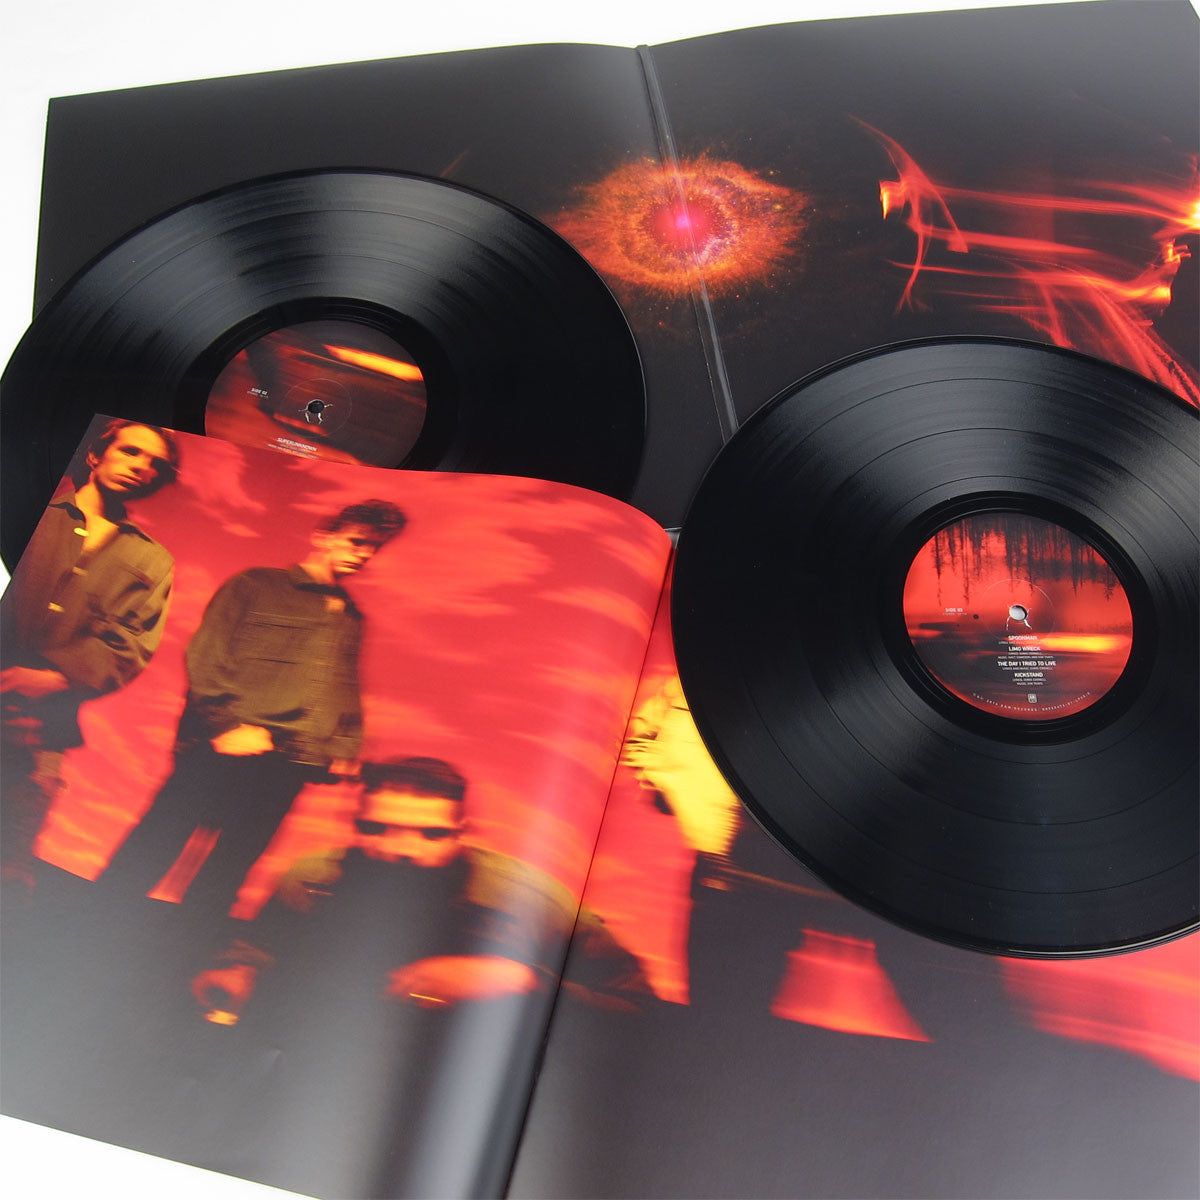 Soundgarden: Superunknown (Free MP3 + 200g) Vinyl 2LP gatefold